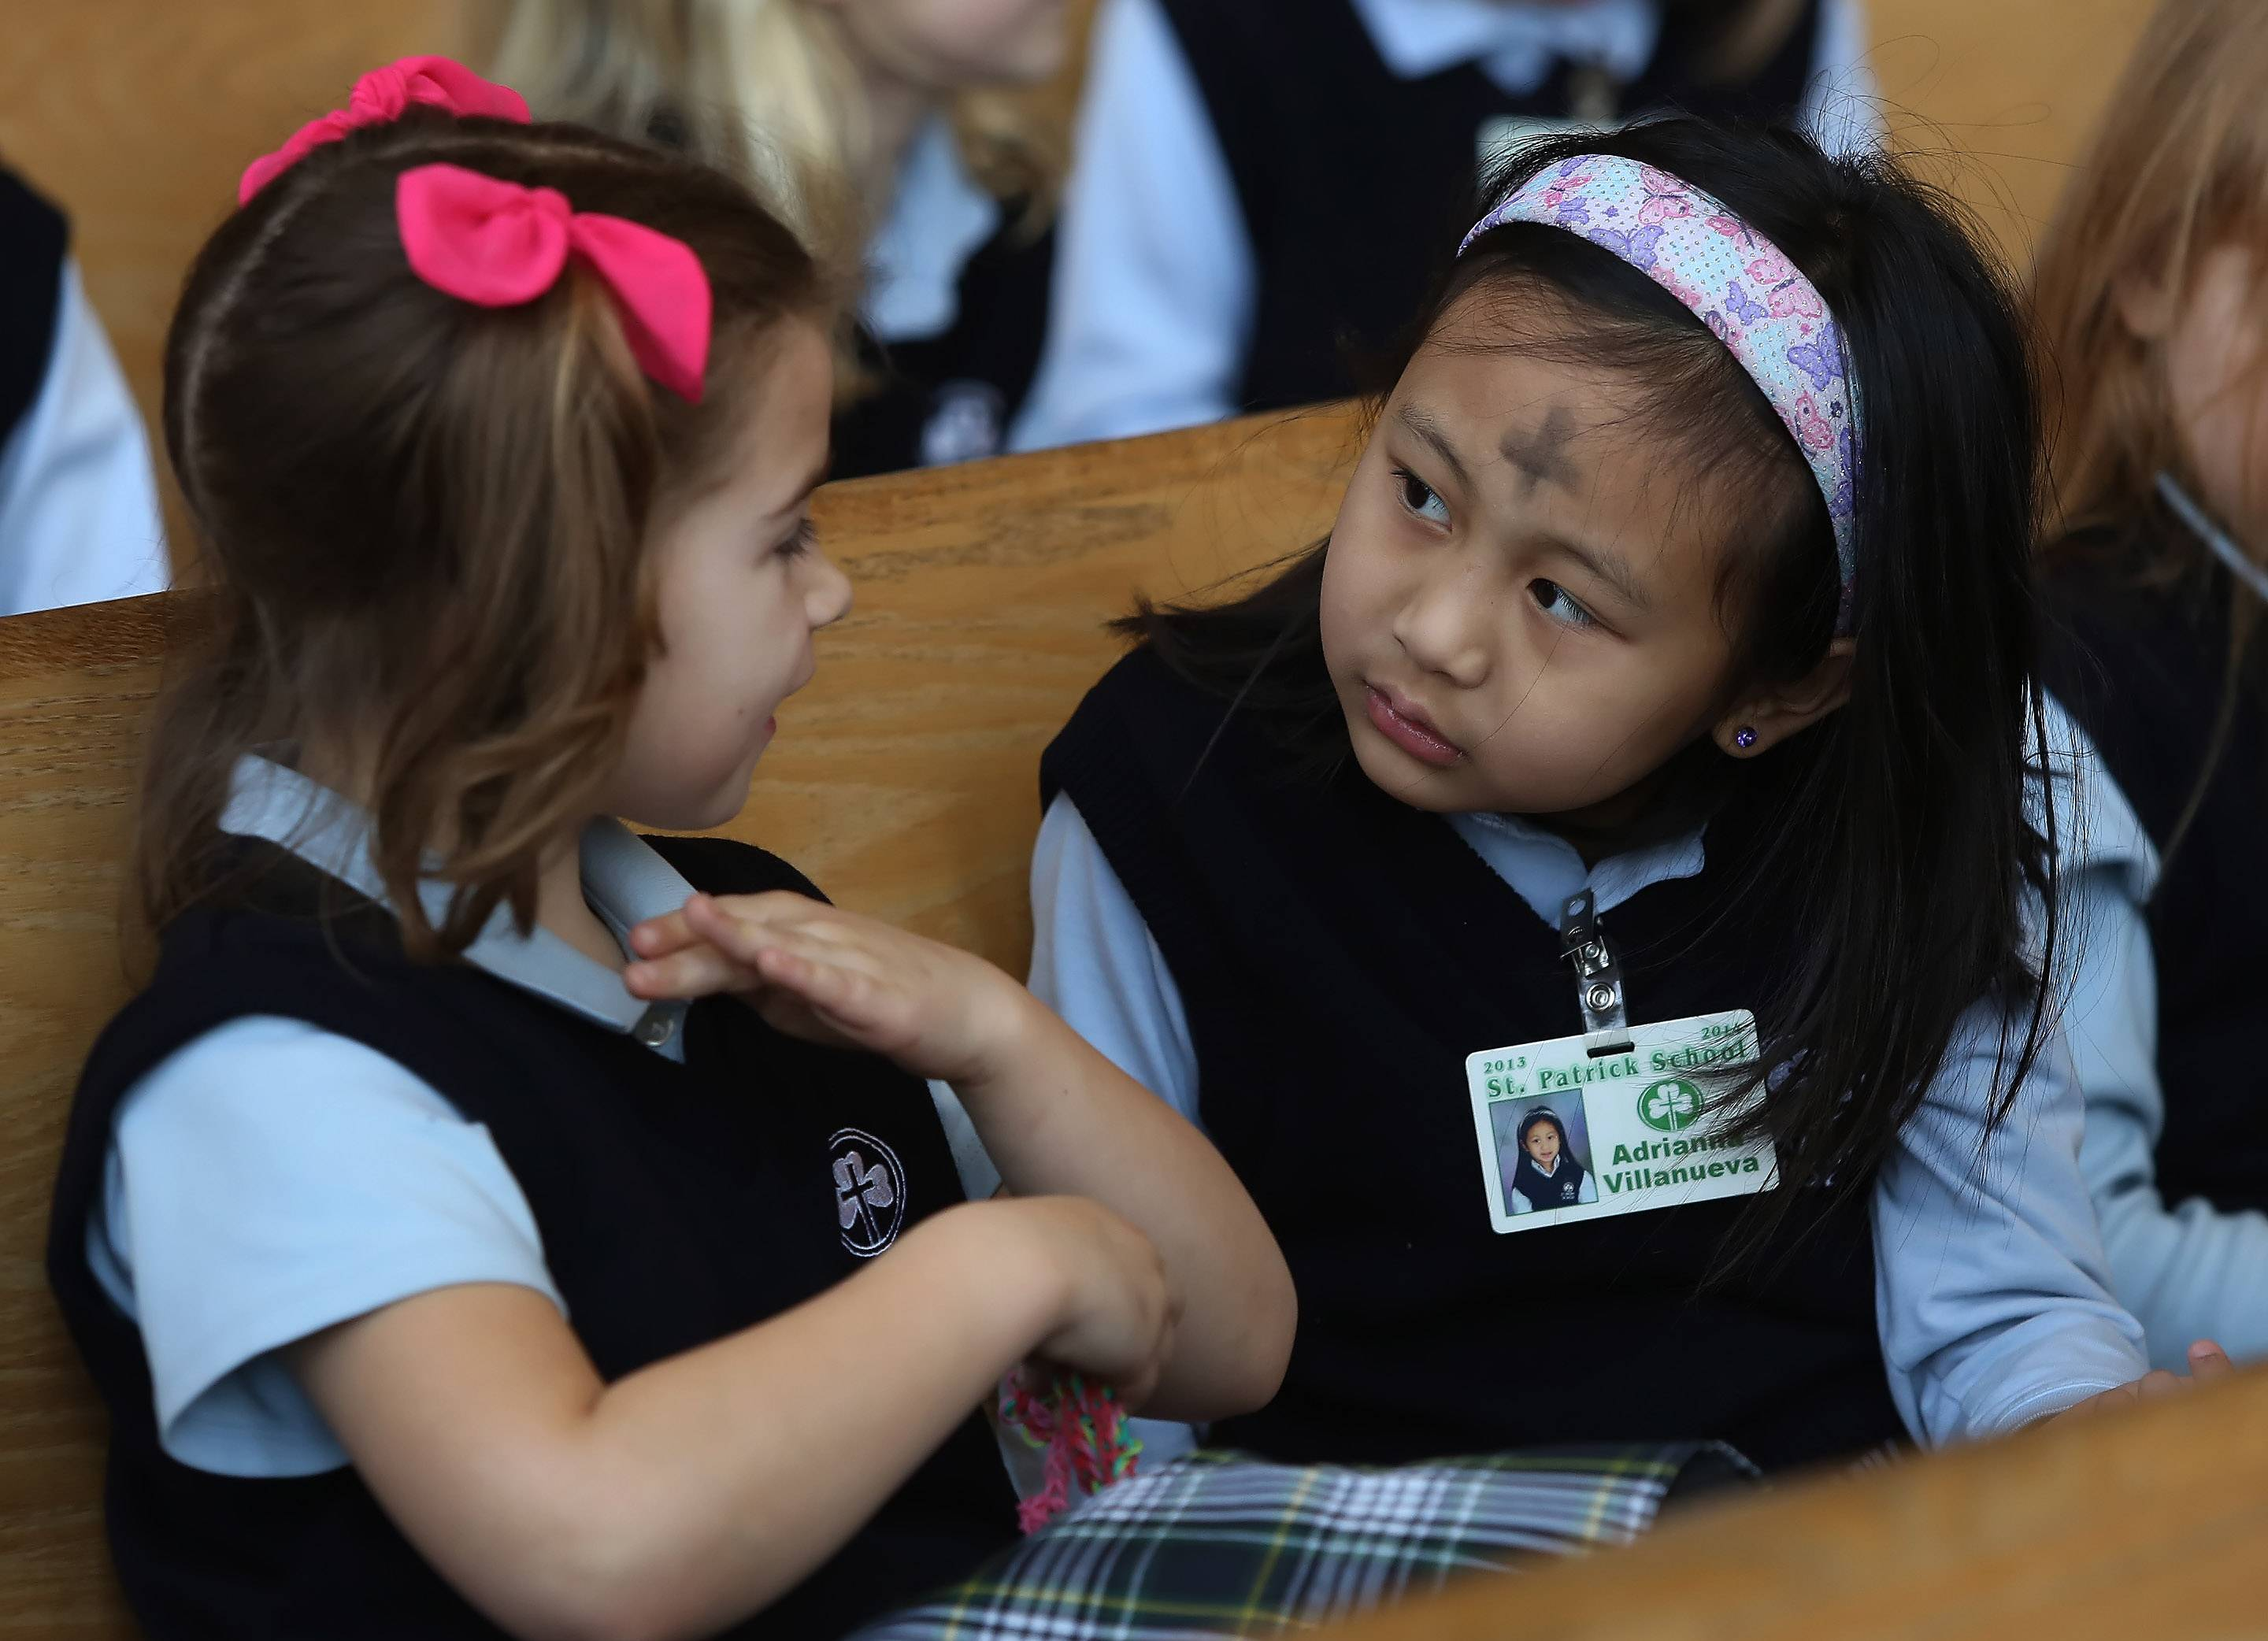 St. Patrick School first graders Brianna Brincks, left and Adrianna Villanueva talk about thier ashes on their foreheads as they attended Ash Wednesday service at St. Patrick Catholic Church in Wadsworth.